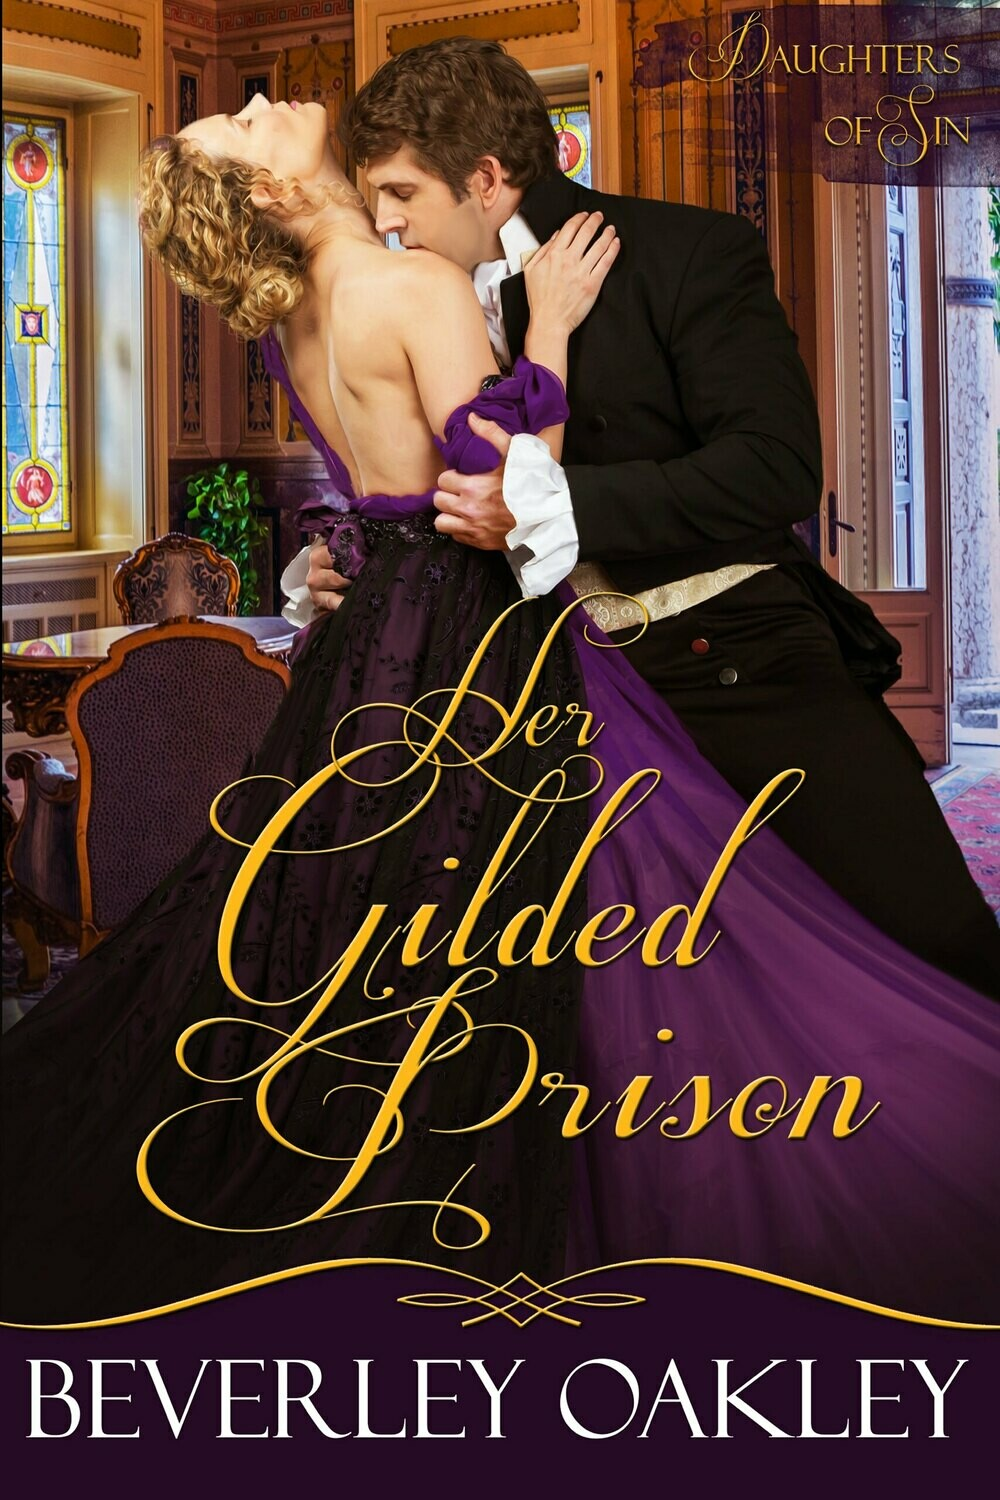 Her Gilded Prison (#1 - Daughters of Sin)